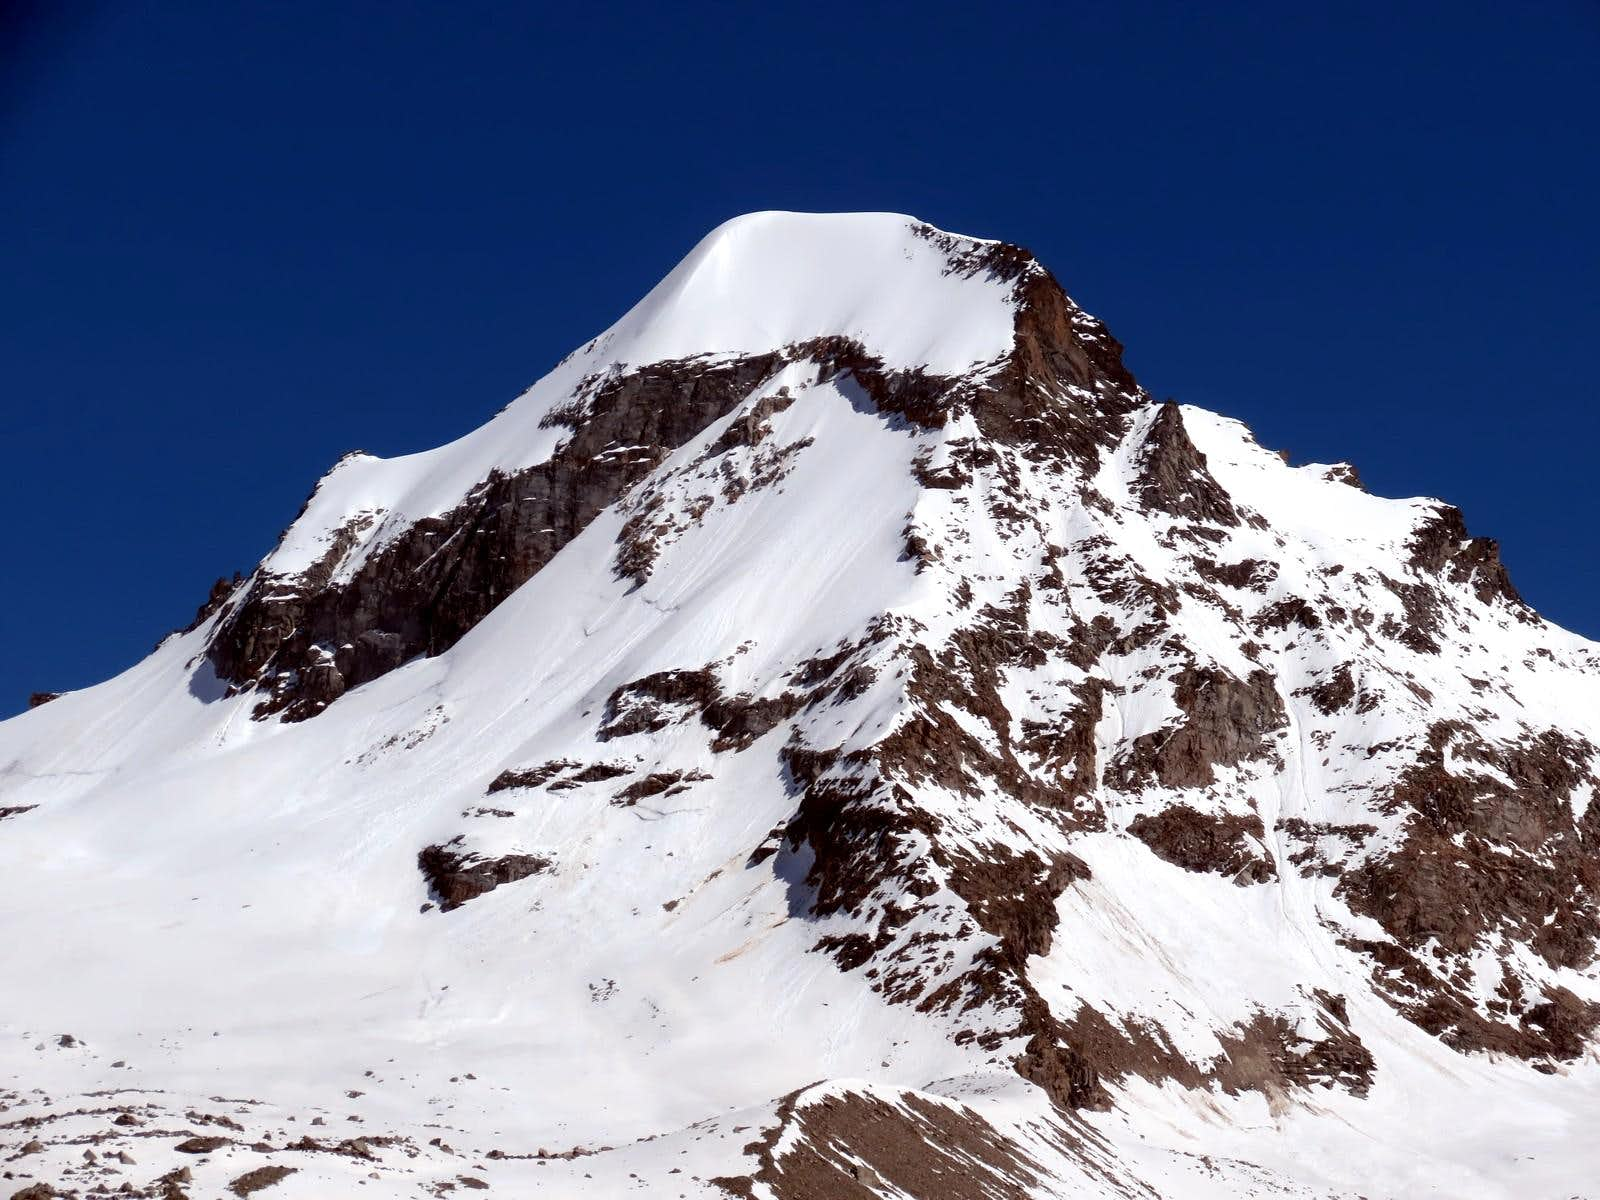 <font color=blue>▲</font>The famous 3500m in the Aosta Valley and the normal route or no (Valsavarenche Valley)